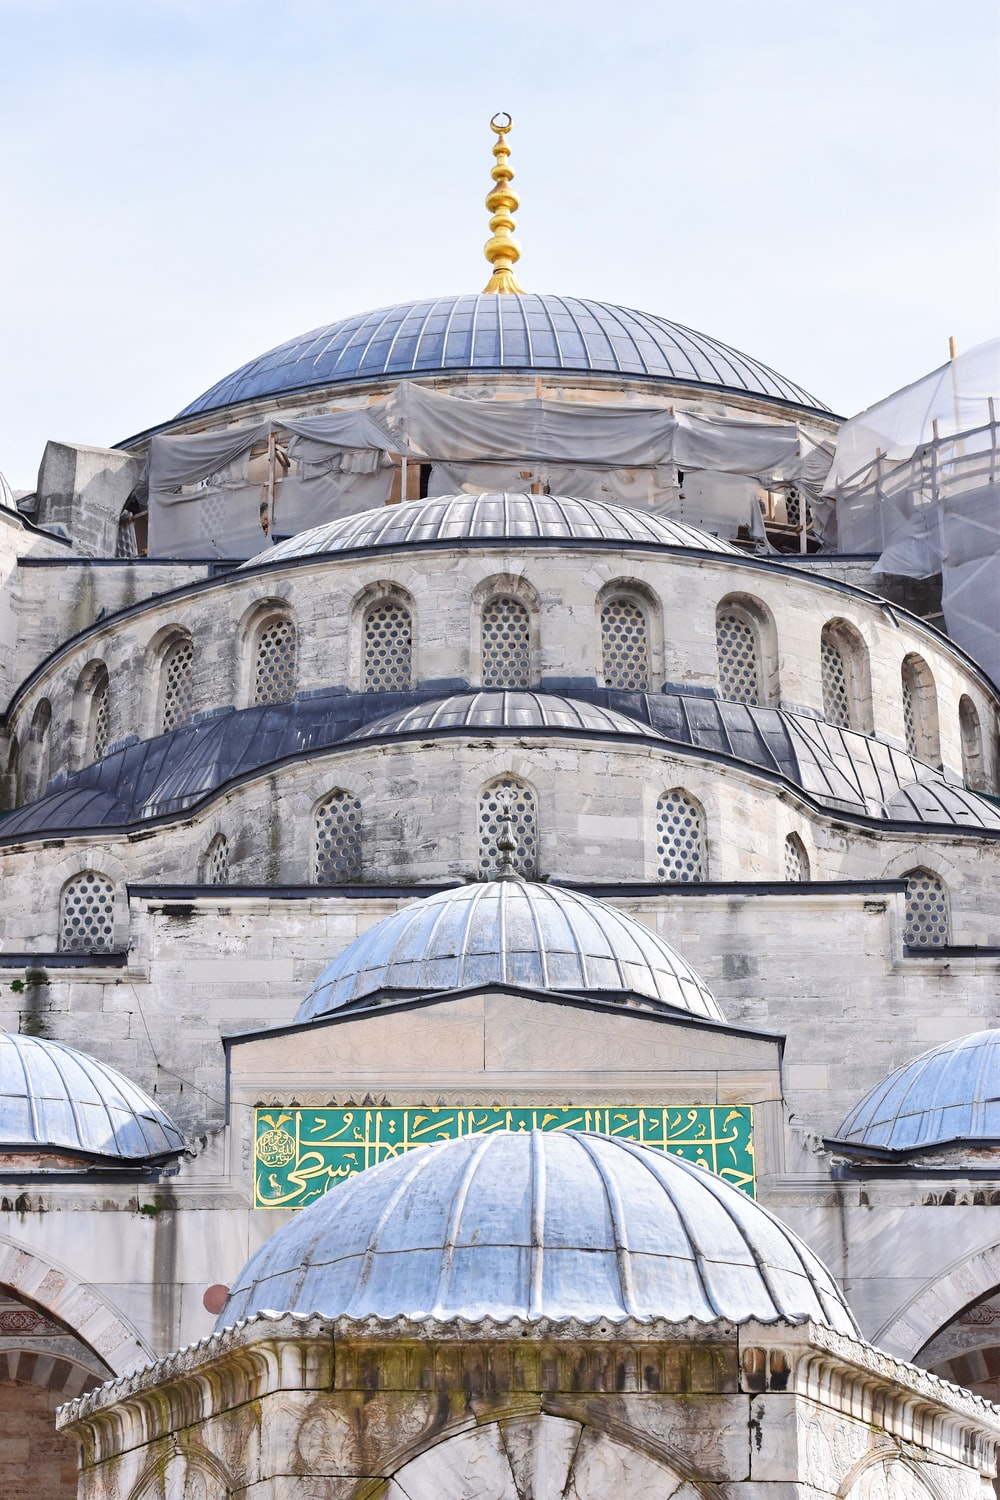 The Blue Mosque at Turkey